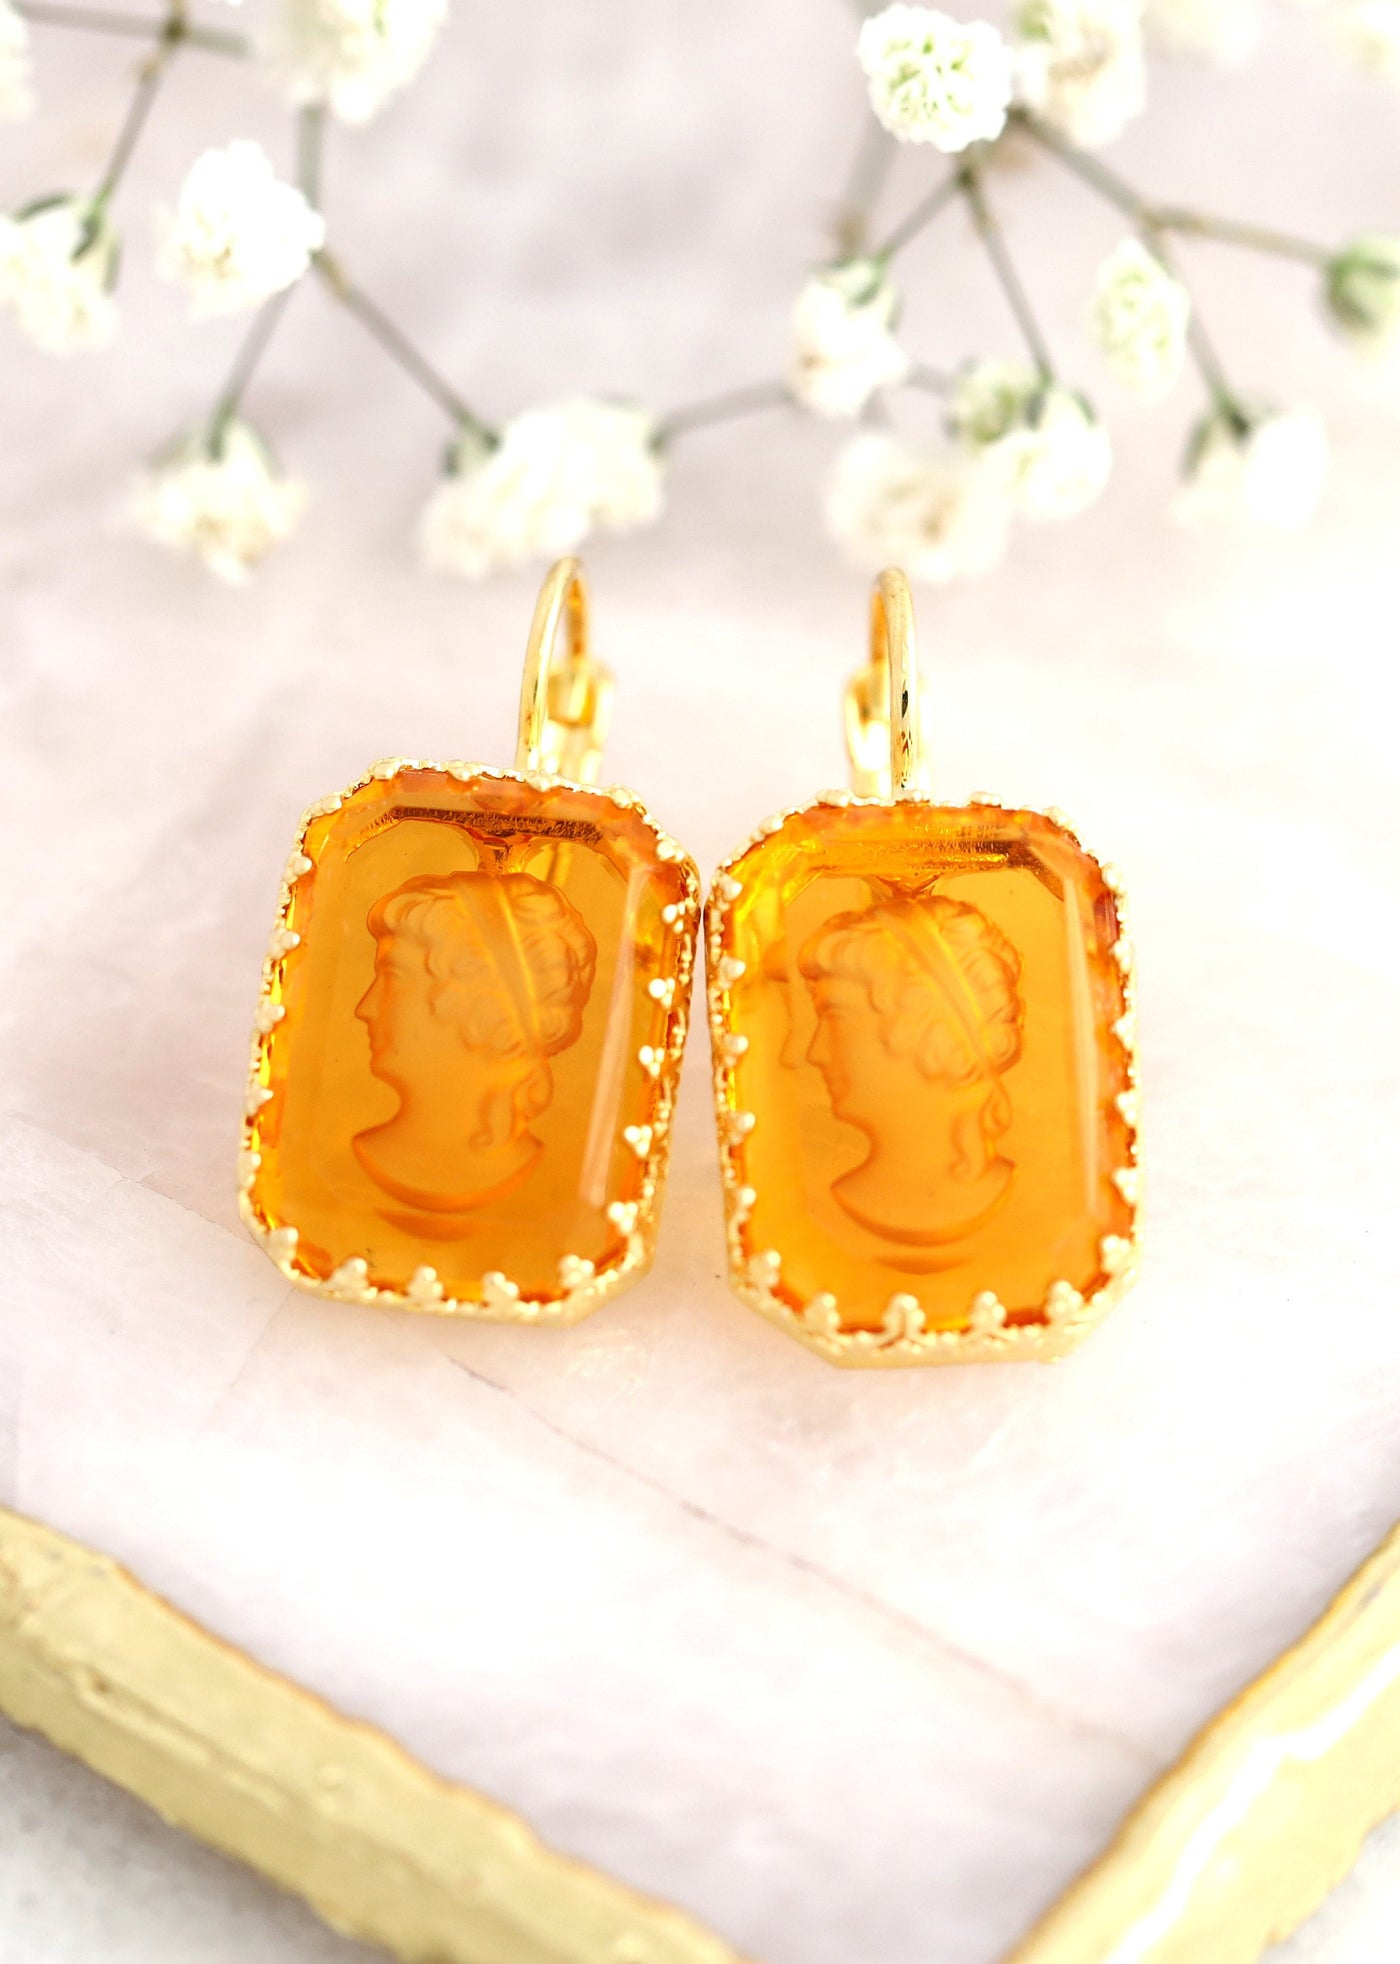 Cameo Earrings, Amber Vintage Crystal Earrings, Bridal Drop Crystal Earrings, Crystal Cameo Earrings, Gift For Her, Victorian Drop Earrings